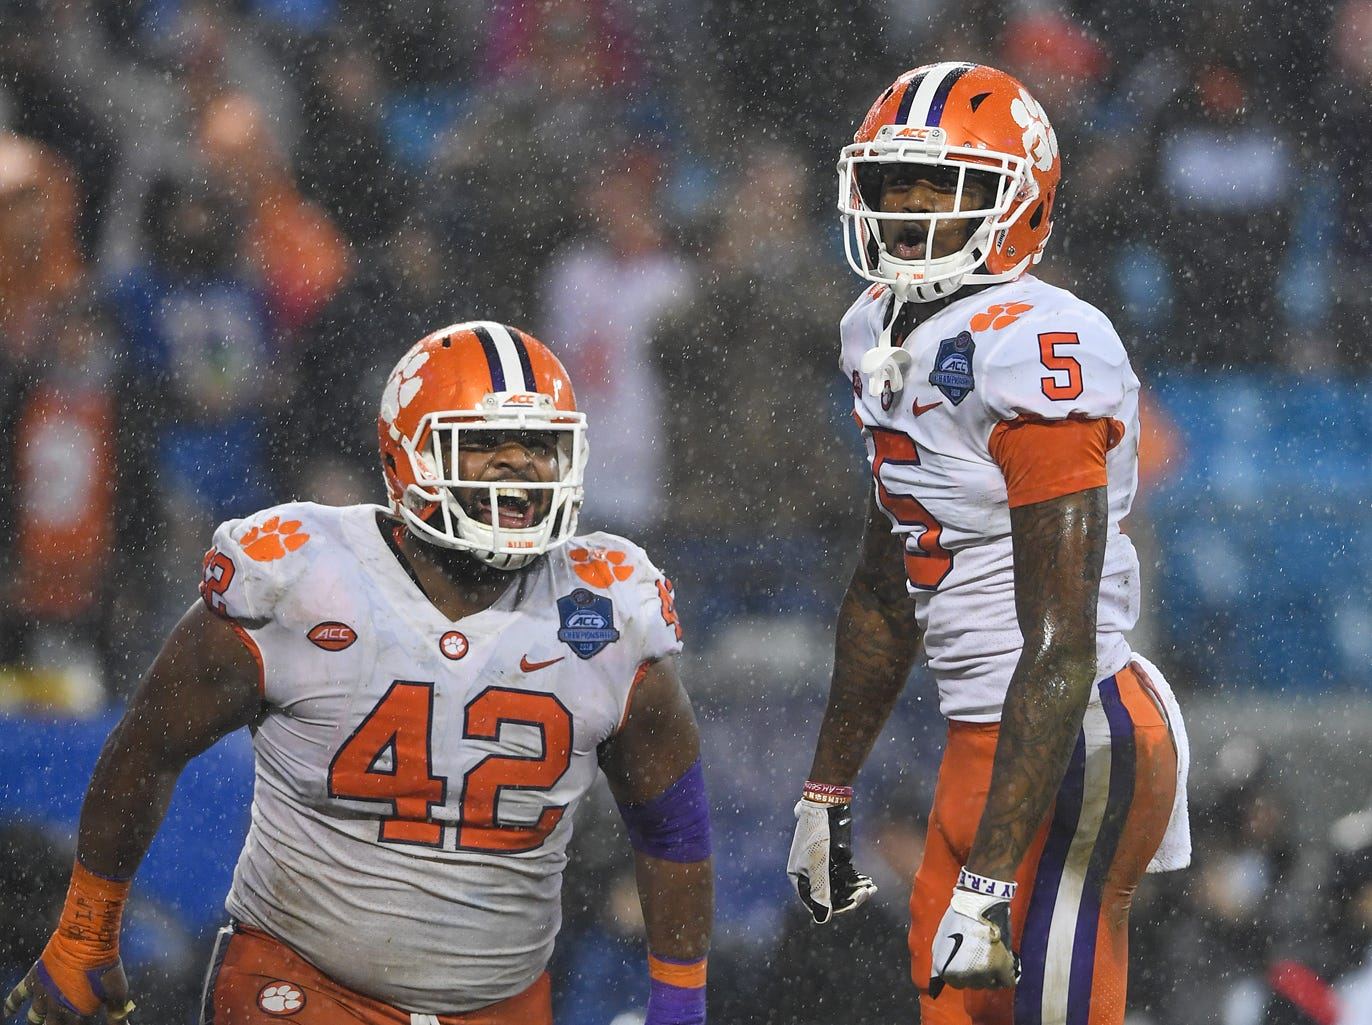 Clemson wide receiver Tee Higgins (5) celebrates with defensive lineman Christian Wilkins (42) after catching a TD against Pittsburgh during the 2nd quarter of the Dr. Pepper ACC Championship at Bank of America Stadium in Charlotte, N.C. Saturday, December 1, 2018.